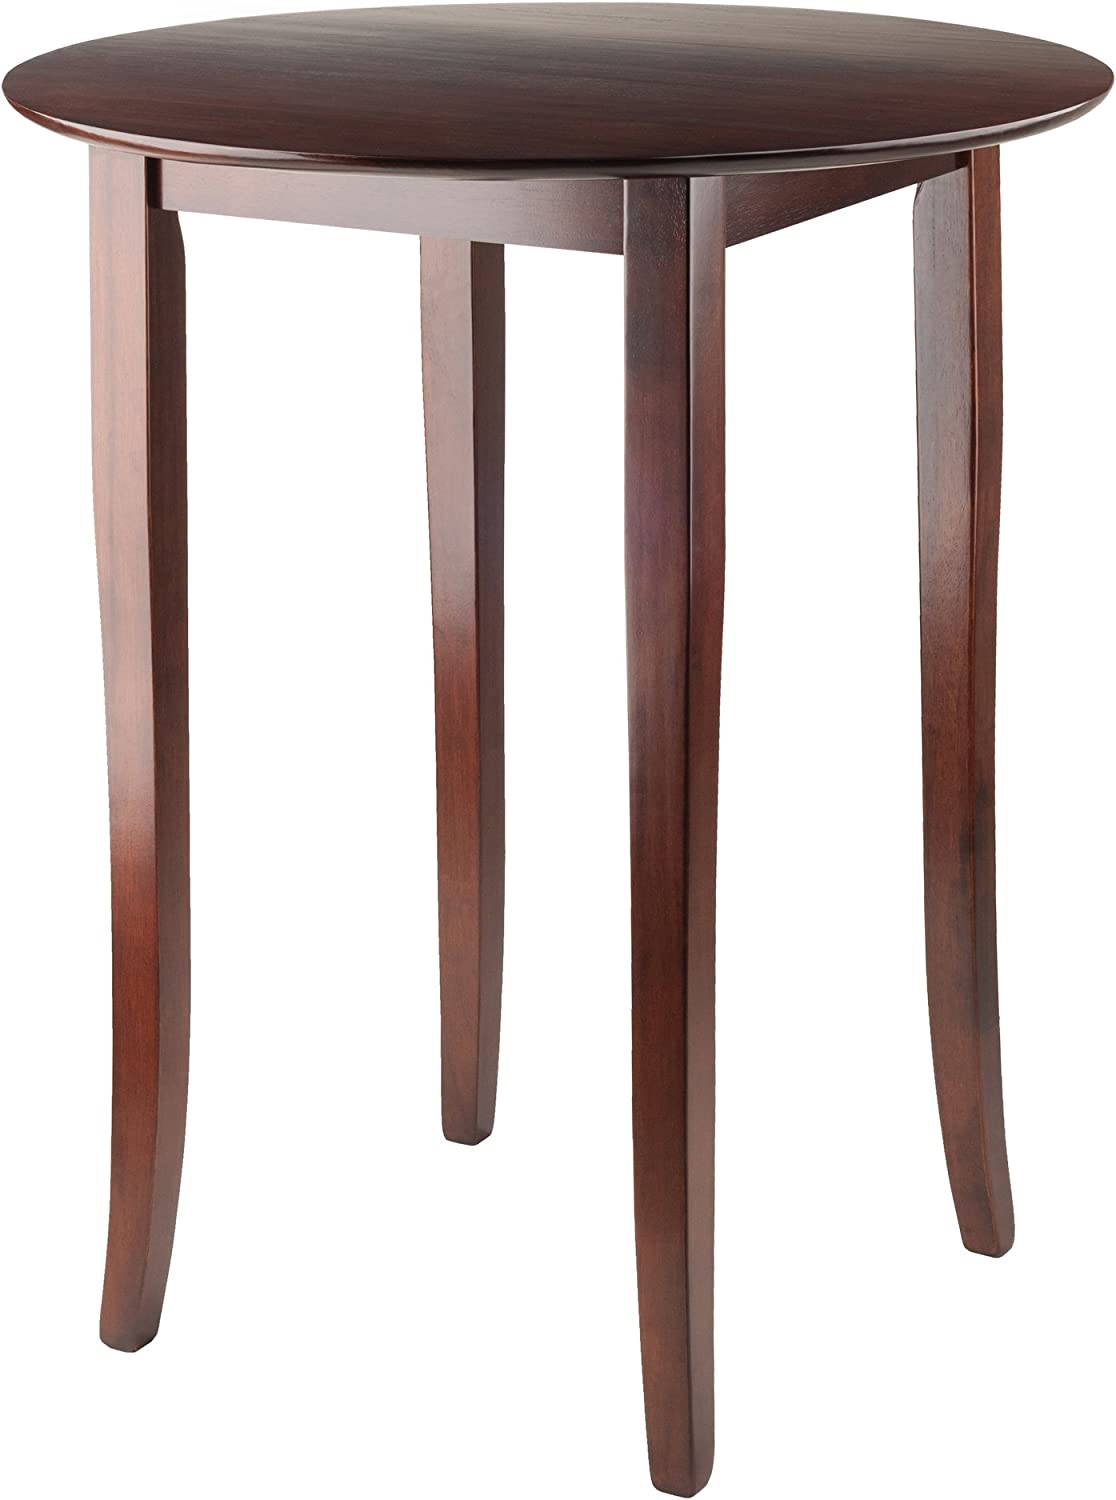 Winsome Wood Fiona Round High Pub Table In Antique Walnut Finish